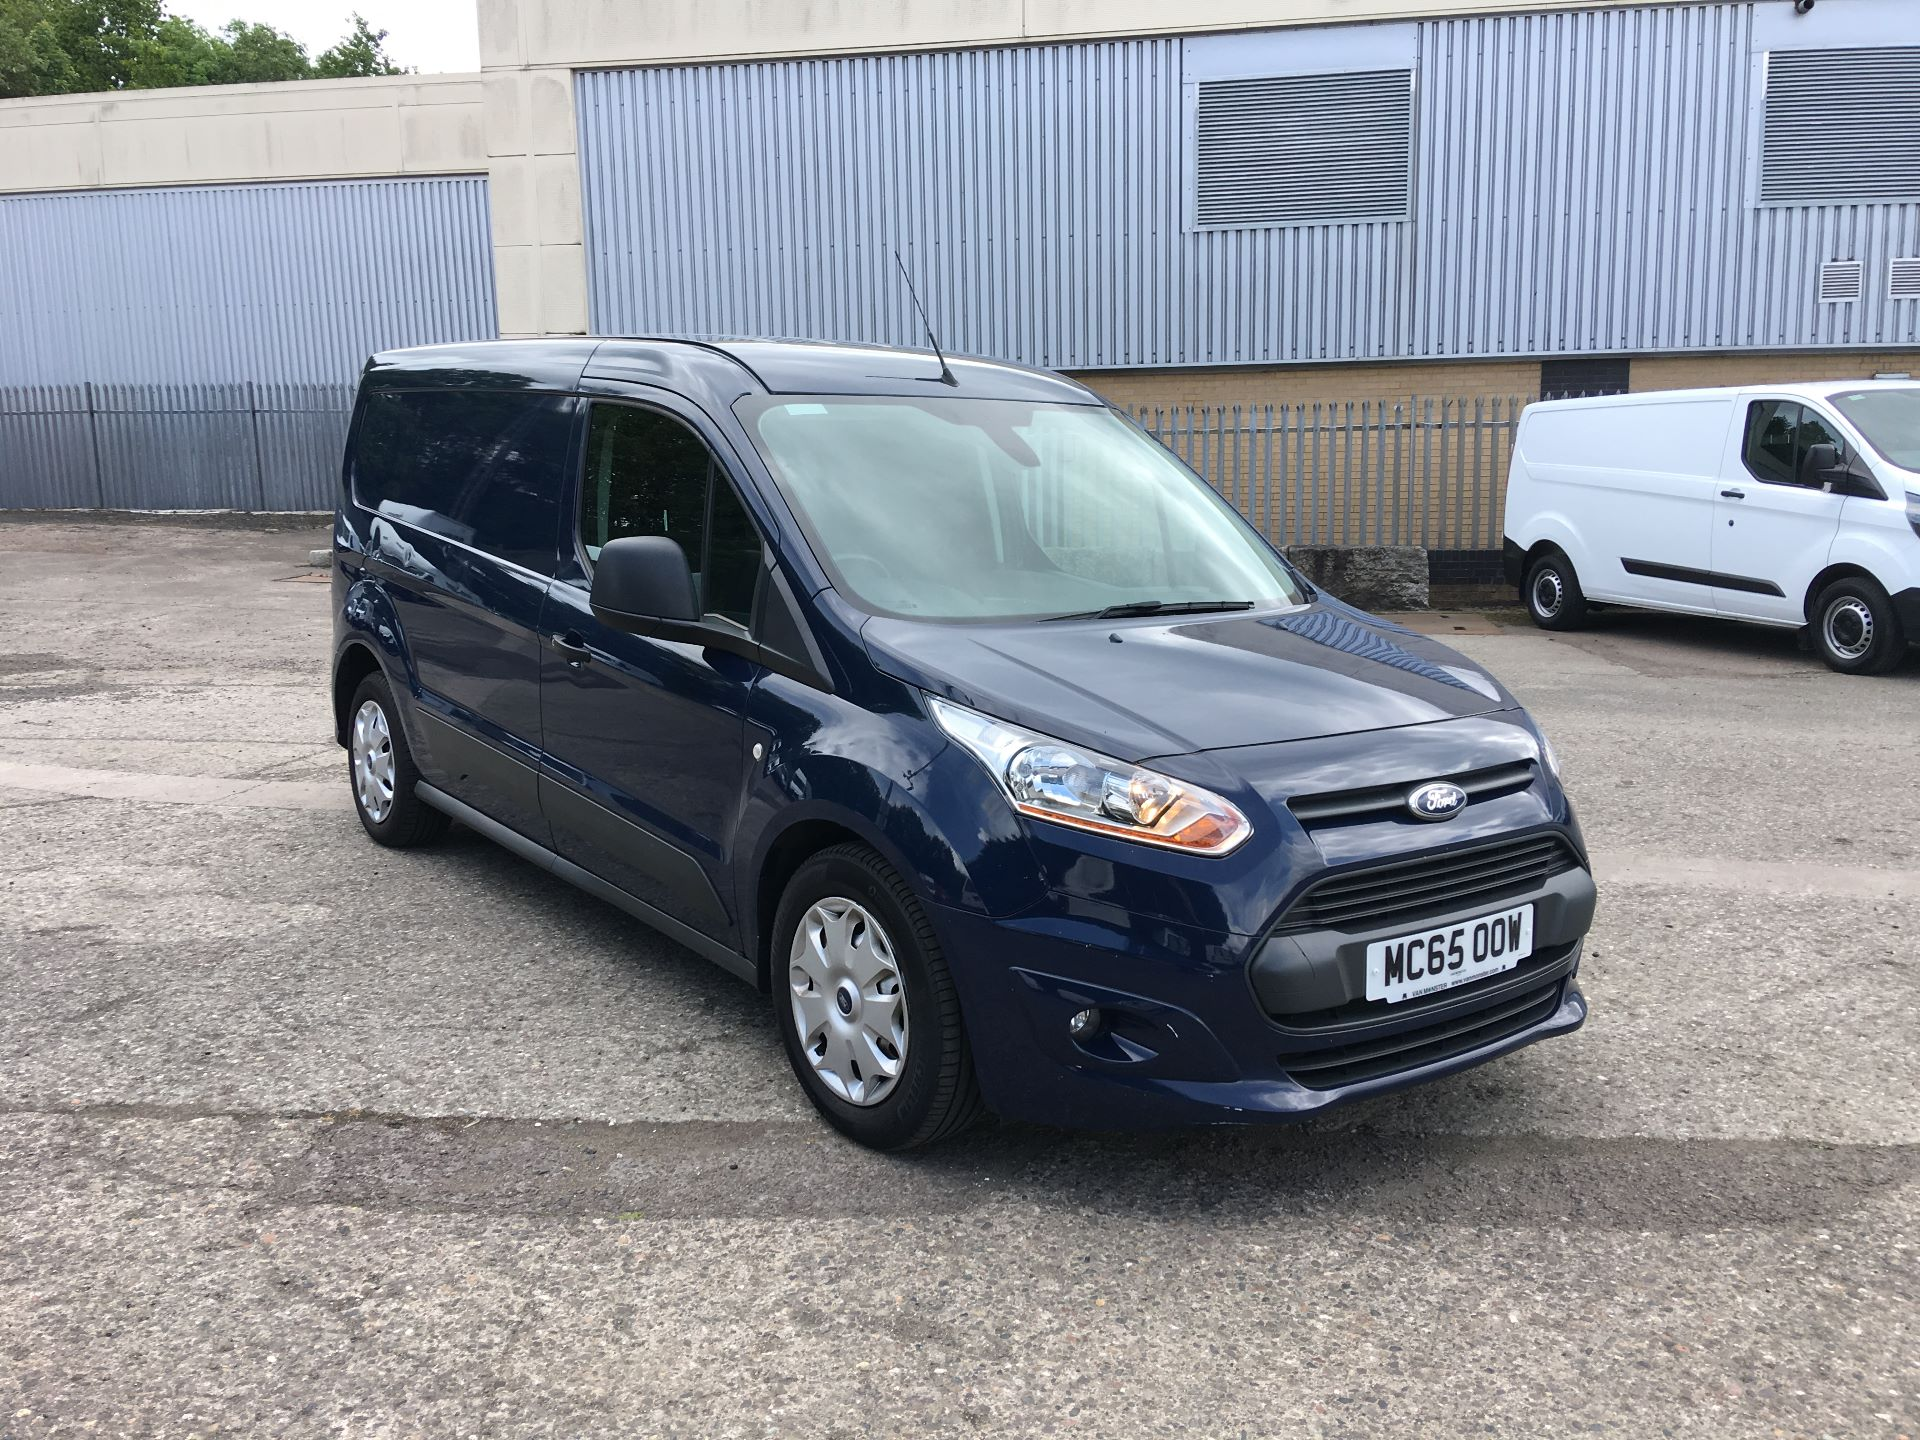 2016 Ford Transit Connect 210 L2 DIESEL FWD 1.6 TDCI 95PS TREND VAN (MC65OOW)